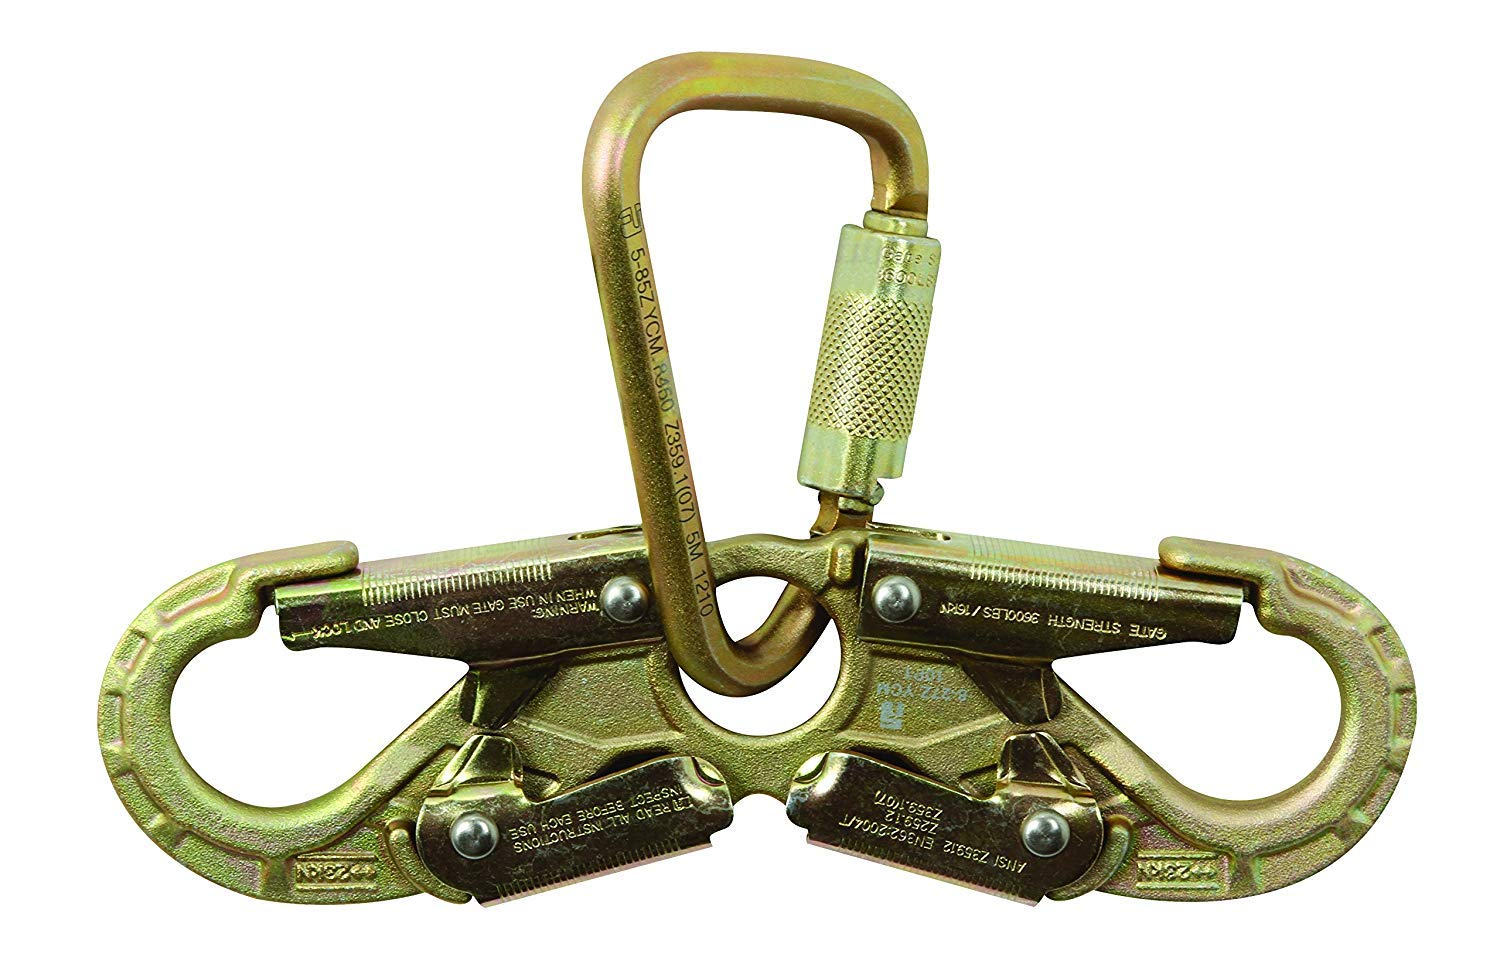 FallTech 8456 Rebar Positioning Assembly - Spreader Hook, Natural